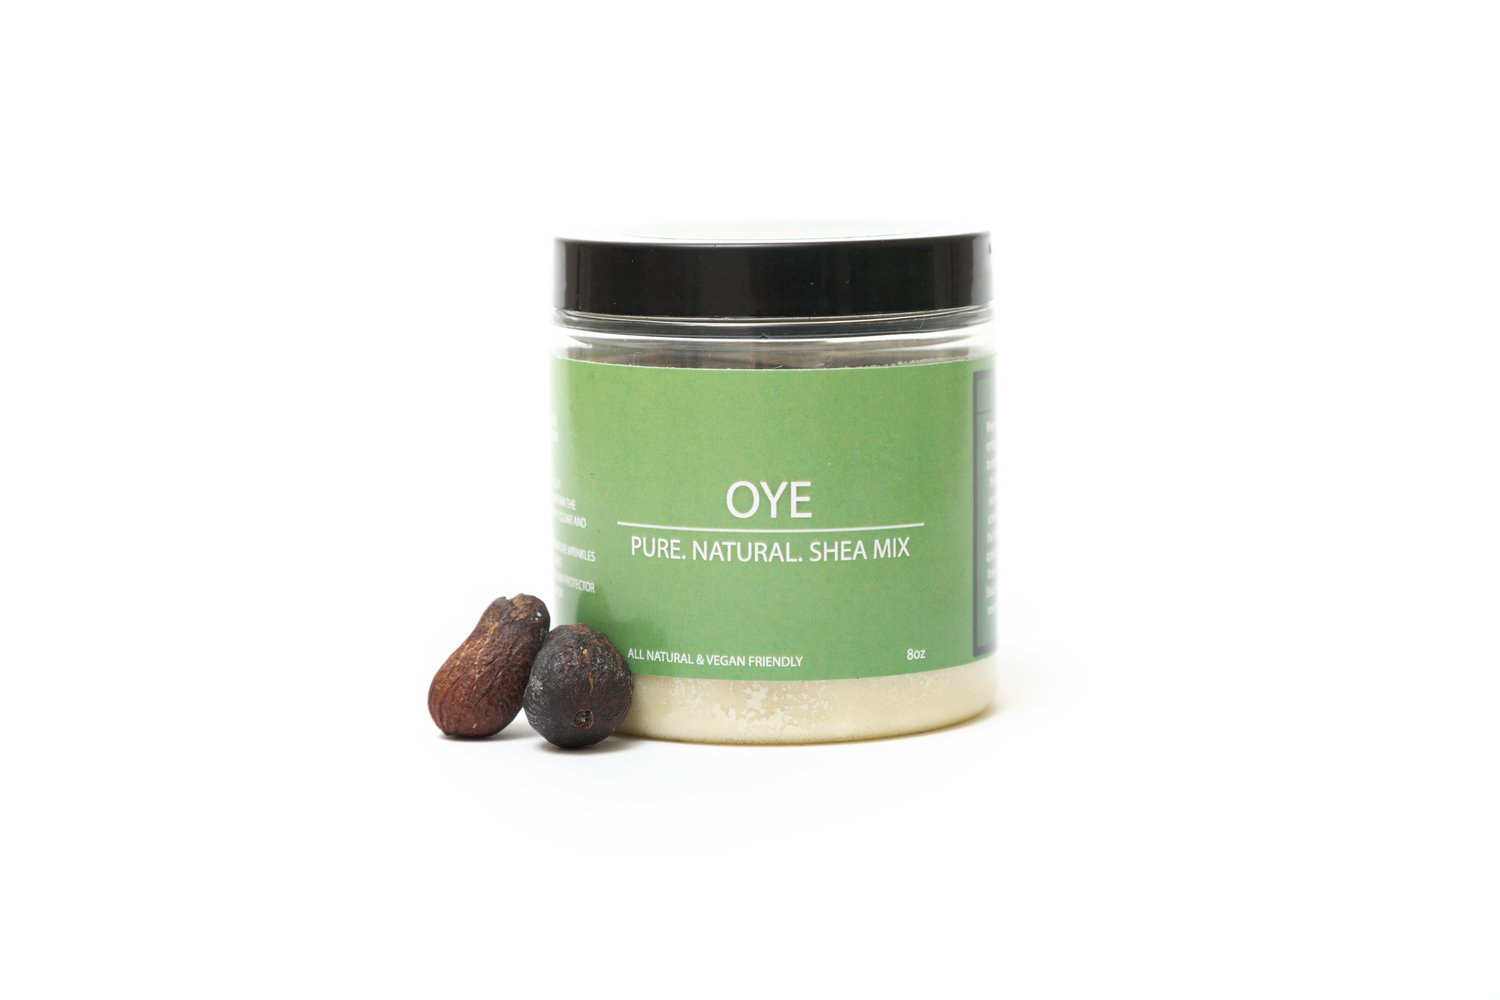 Oye Shea Butter from Oye Green